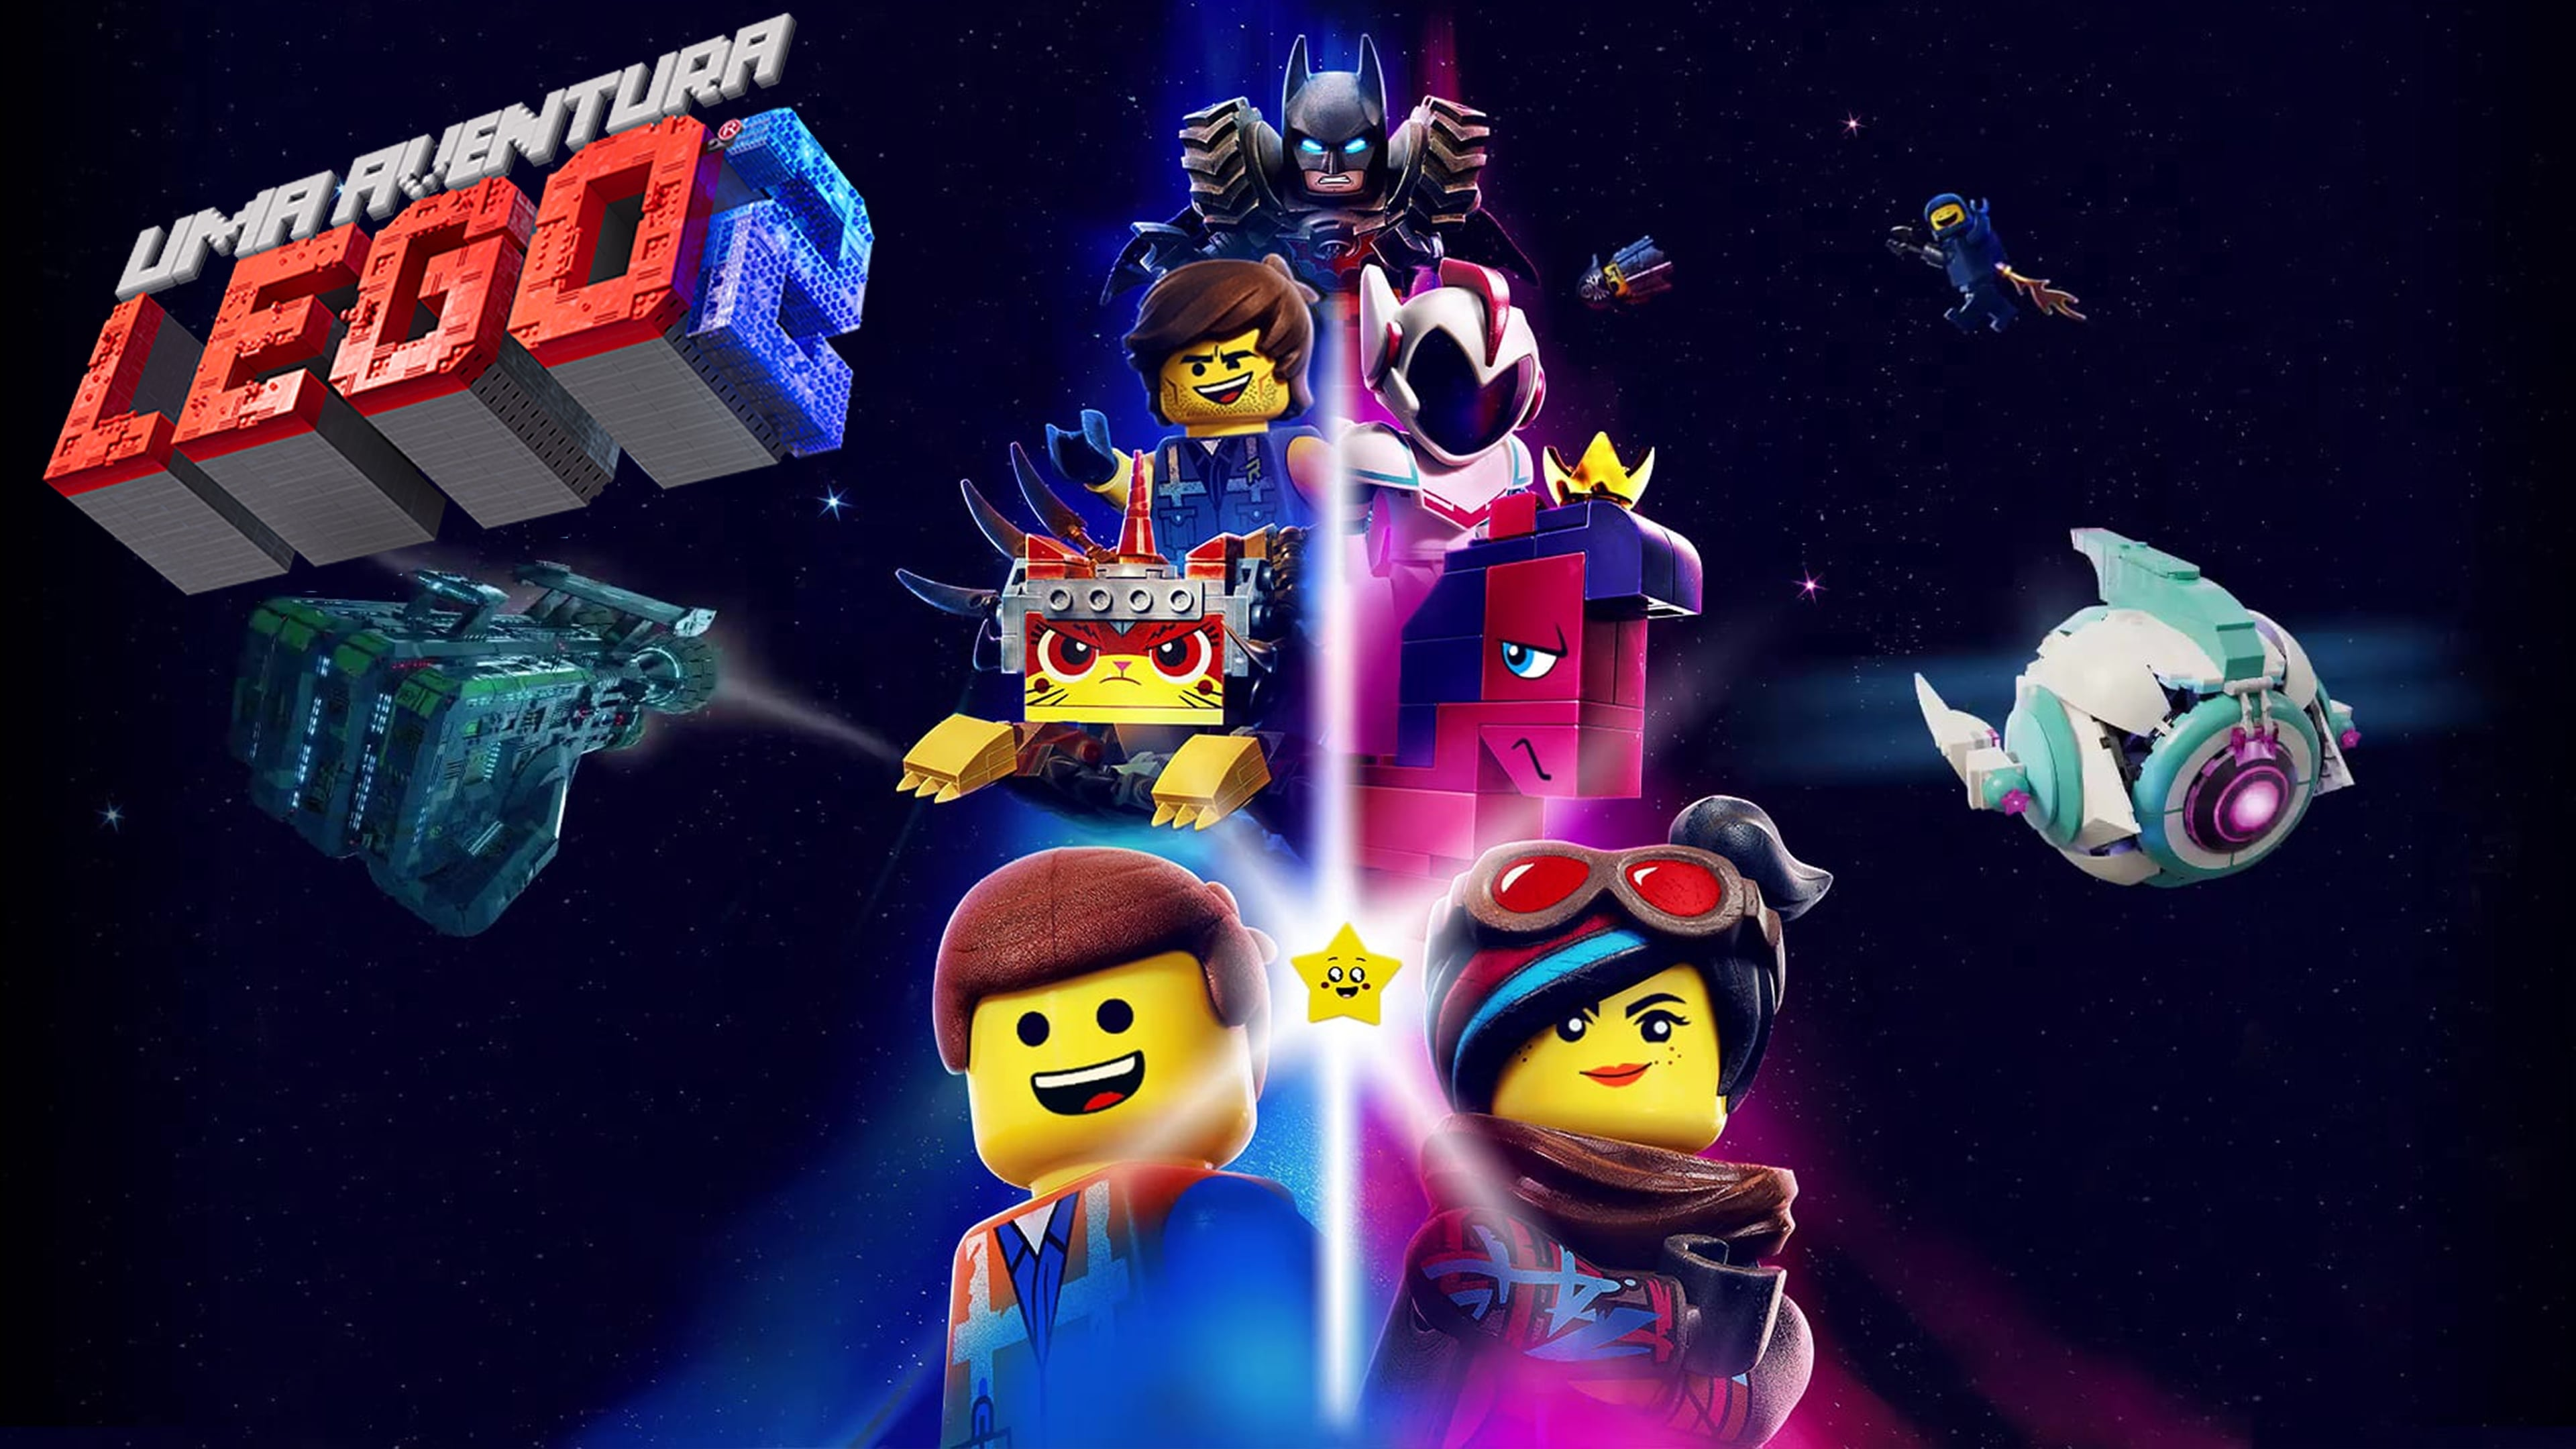 Watch The Lego Movie 2 The Second Part 2019 Full Movie Stream Online Onionplay